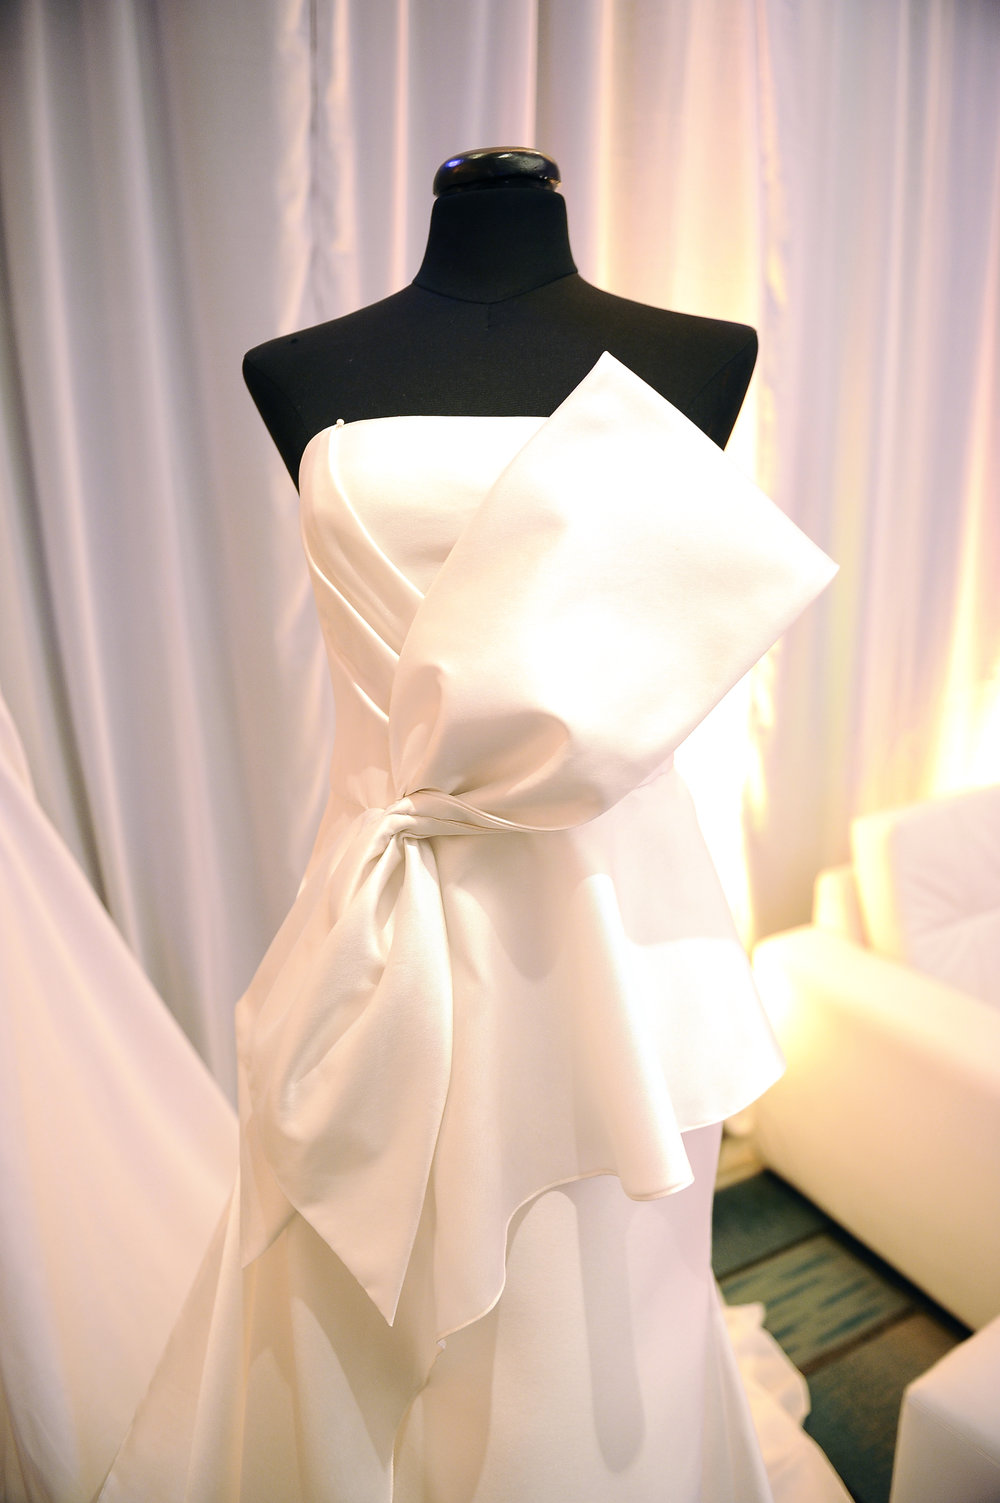 - Wedding Gown created by Vania Romoff